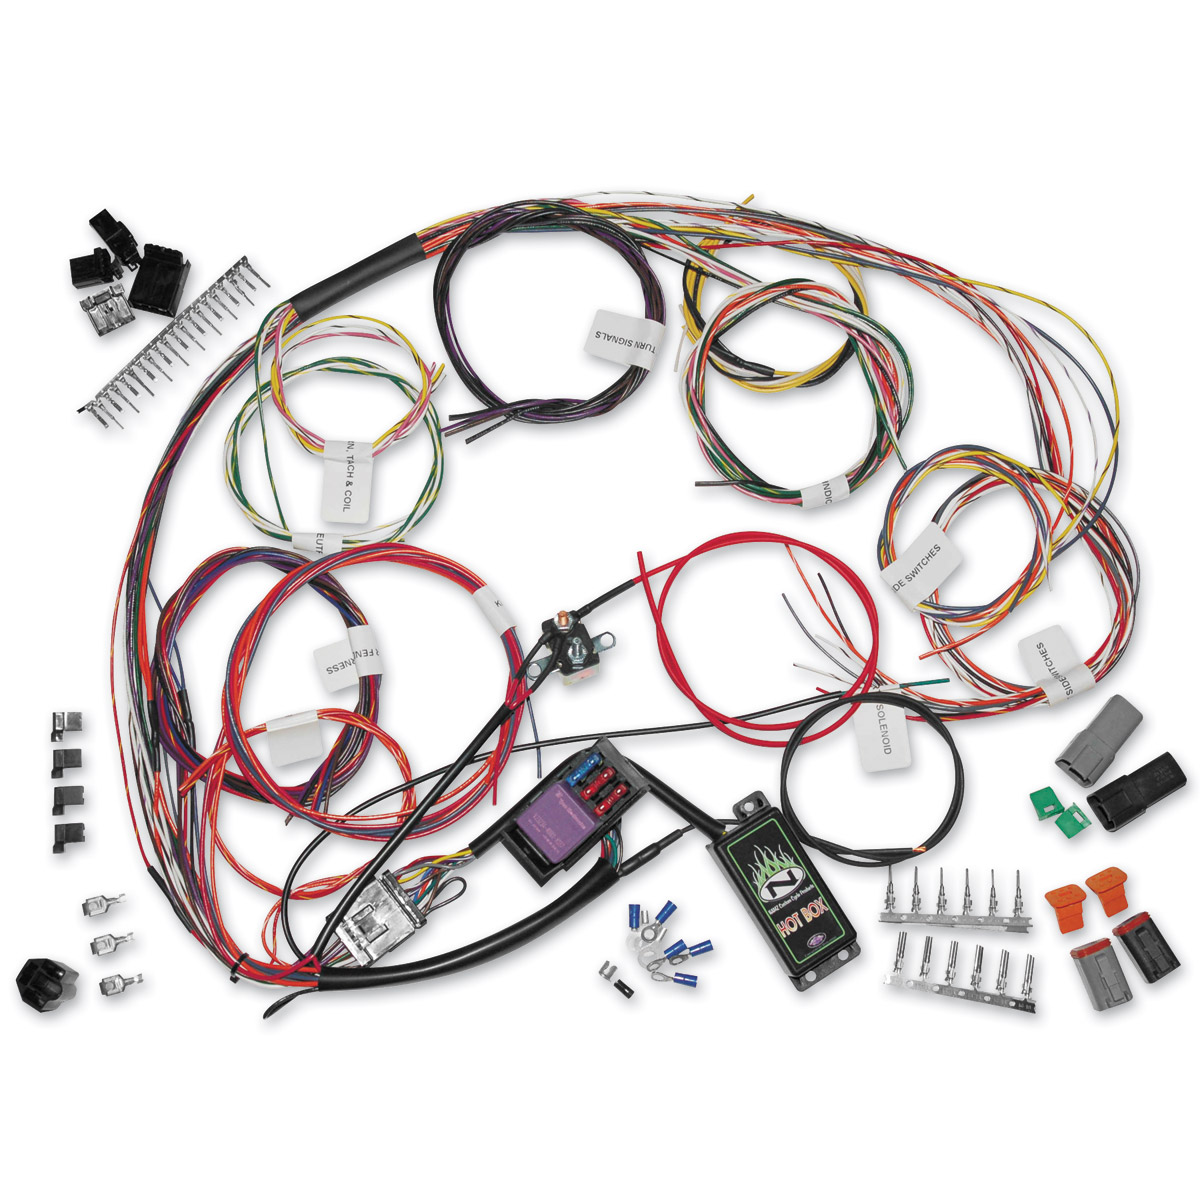 745 072_A namz custom cycle complete bike wiring harness kit 745 072 j&p harley wiring harness kits at reclaimingppi.co